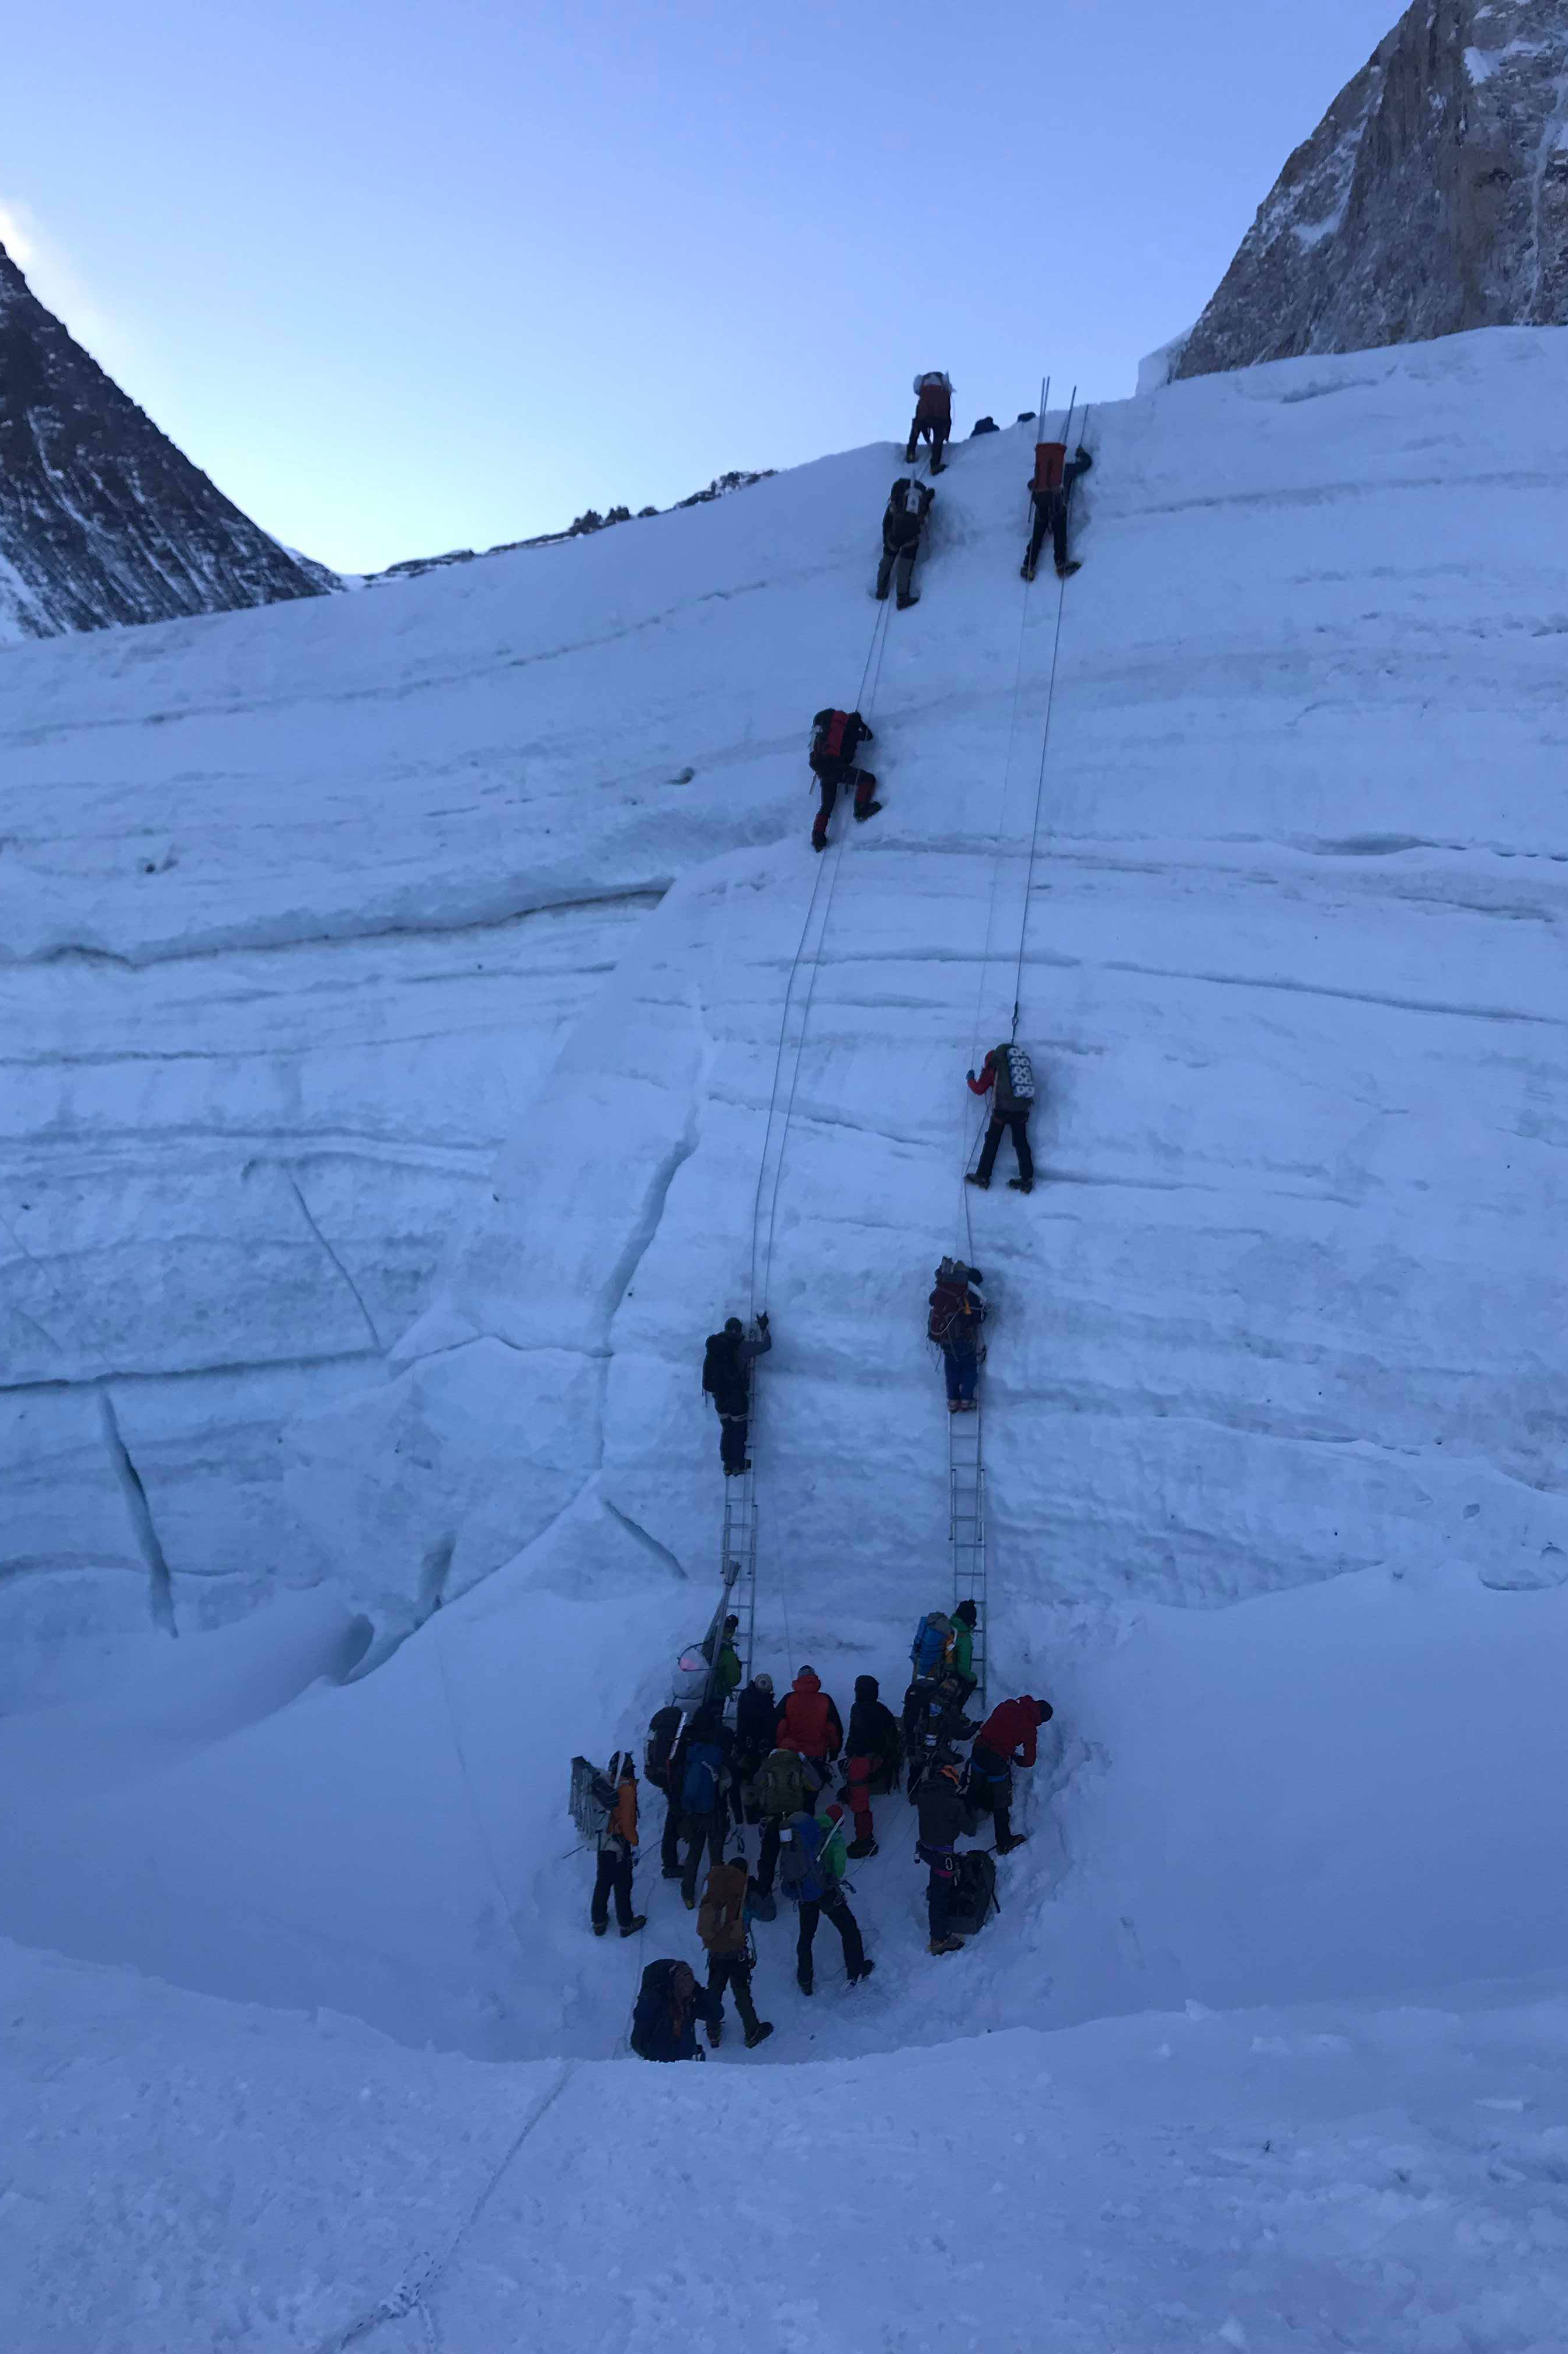 Climbers crossing icefall section on Mt Everest.